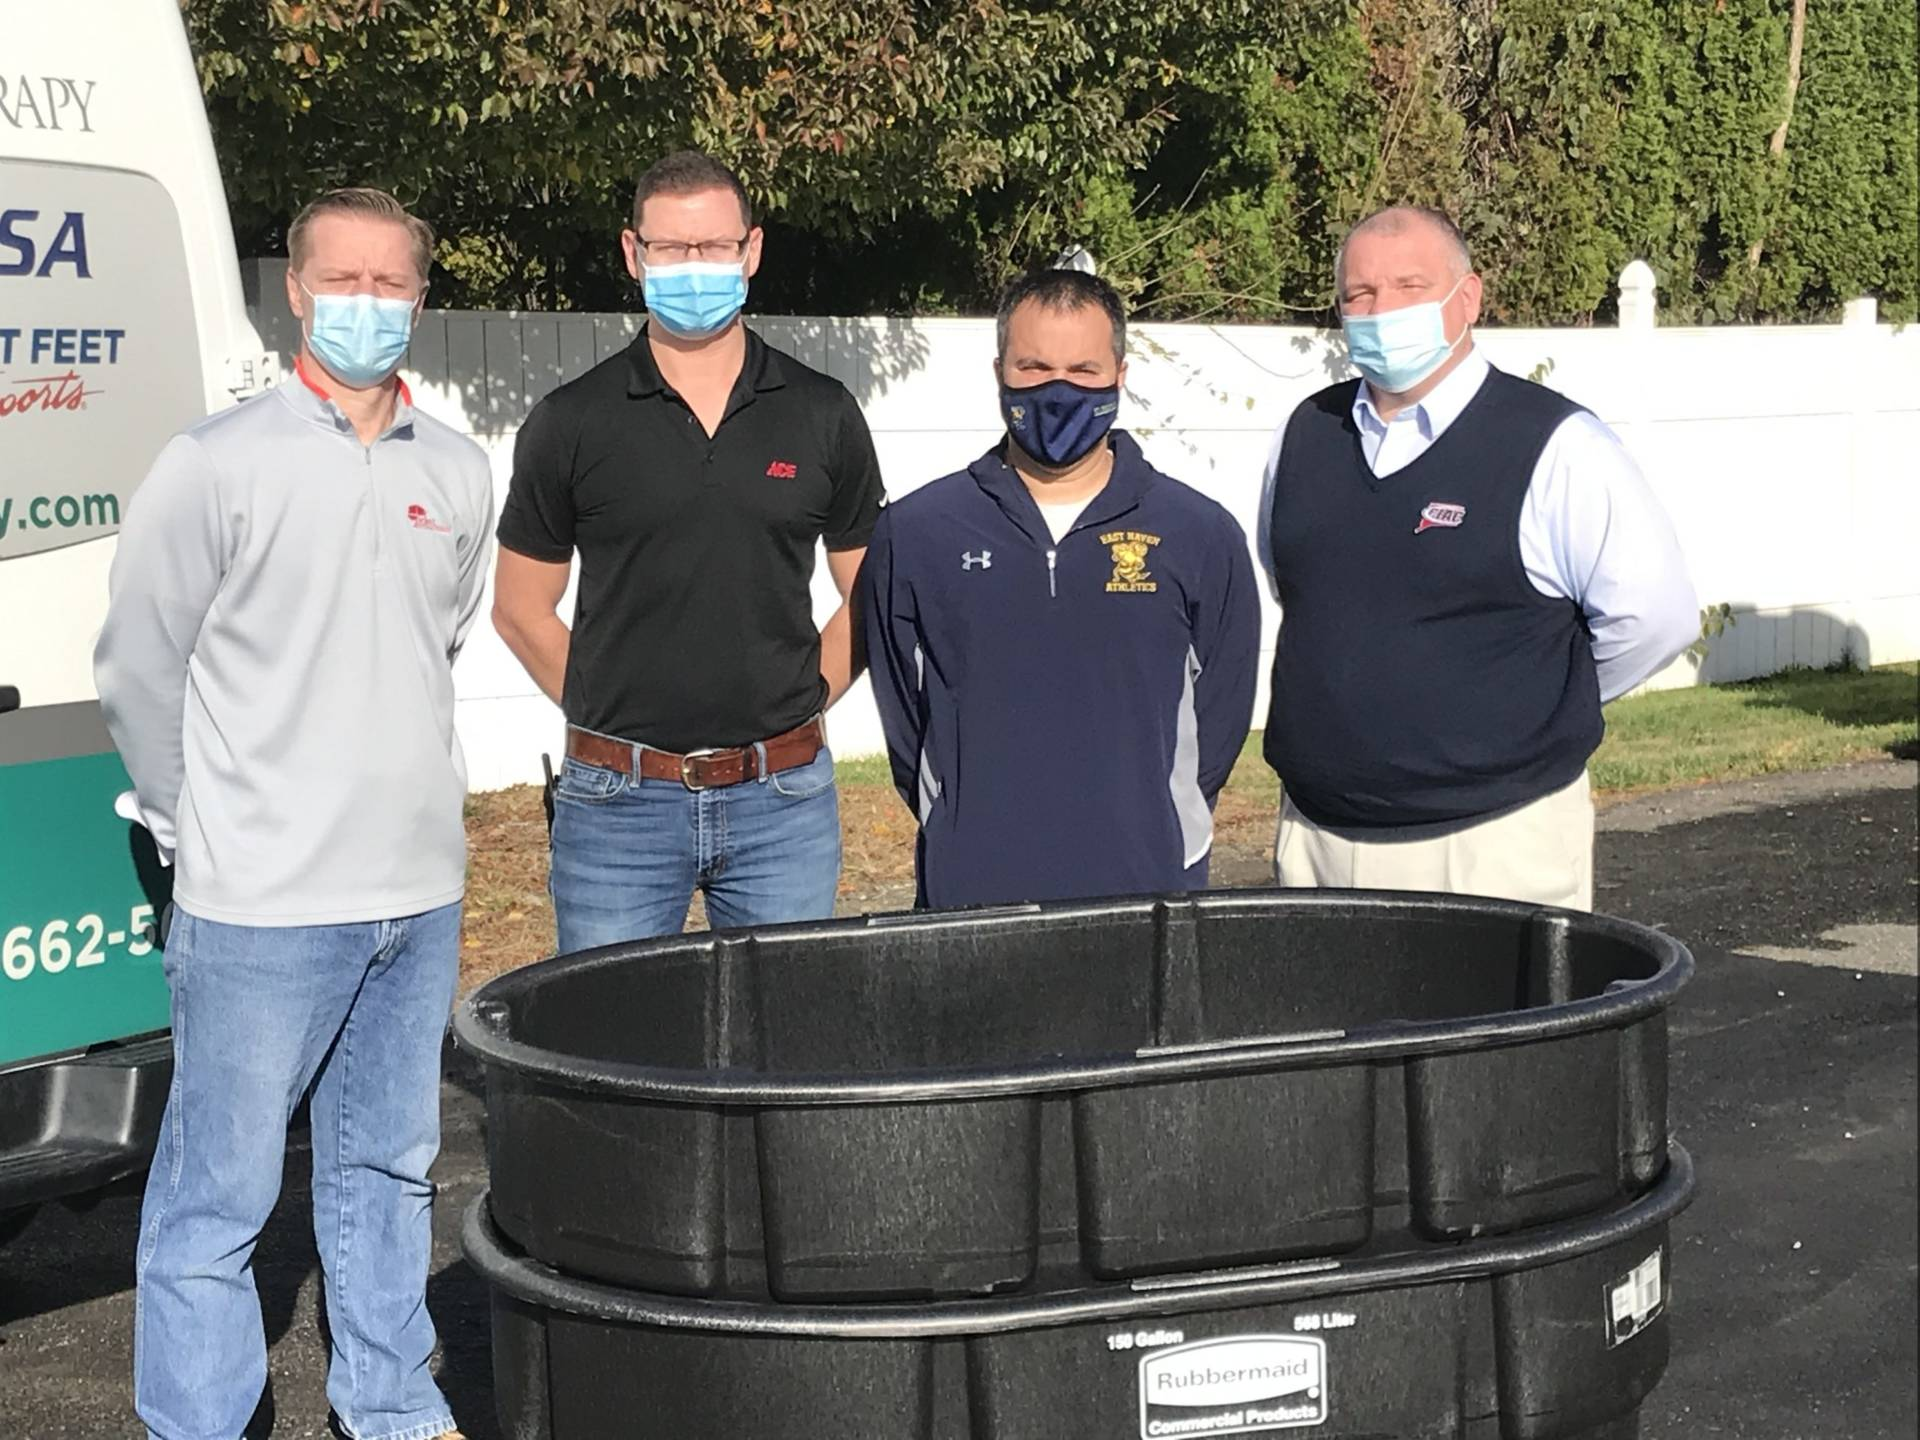 Pictured left to right are Perry Siegel CATA President, Matt Petuch Store Manager at H.W. Hine Hardware in Cheshire, Marc Aceto athletic trainer from East Haven High School, and Glenn Lungarini CIAC Executive Director.